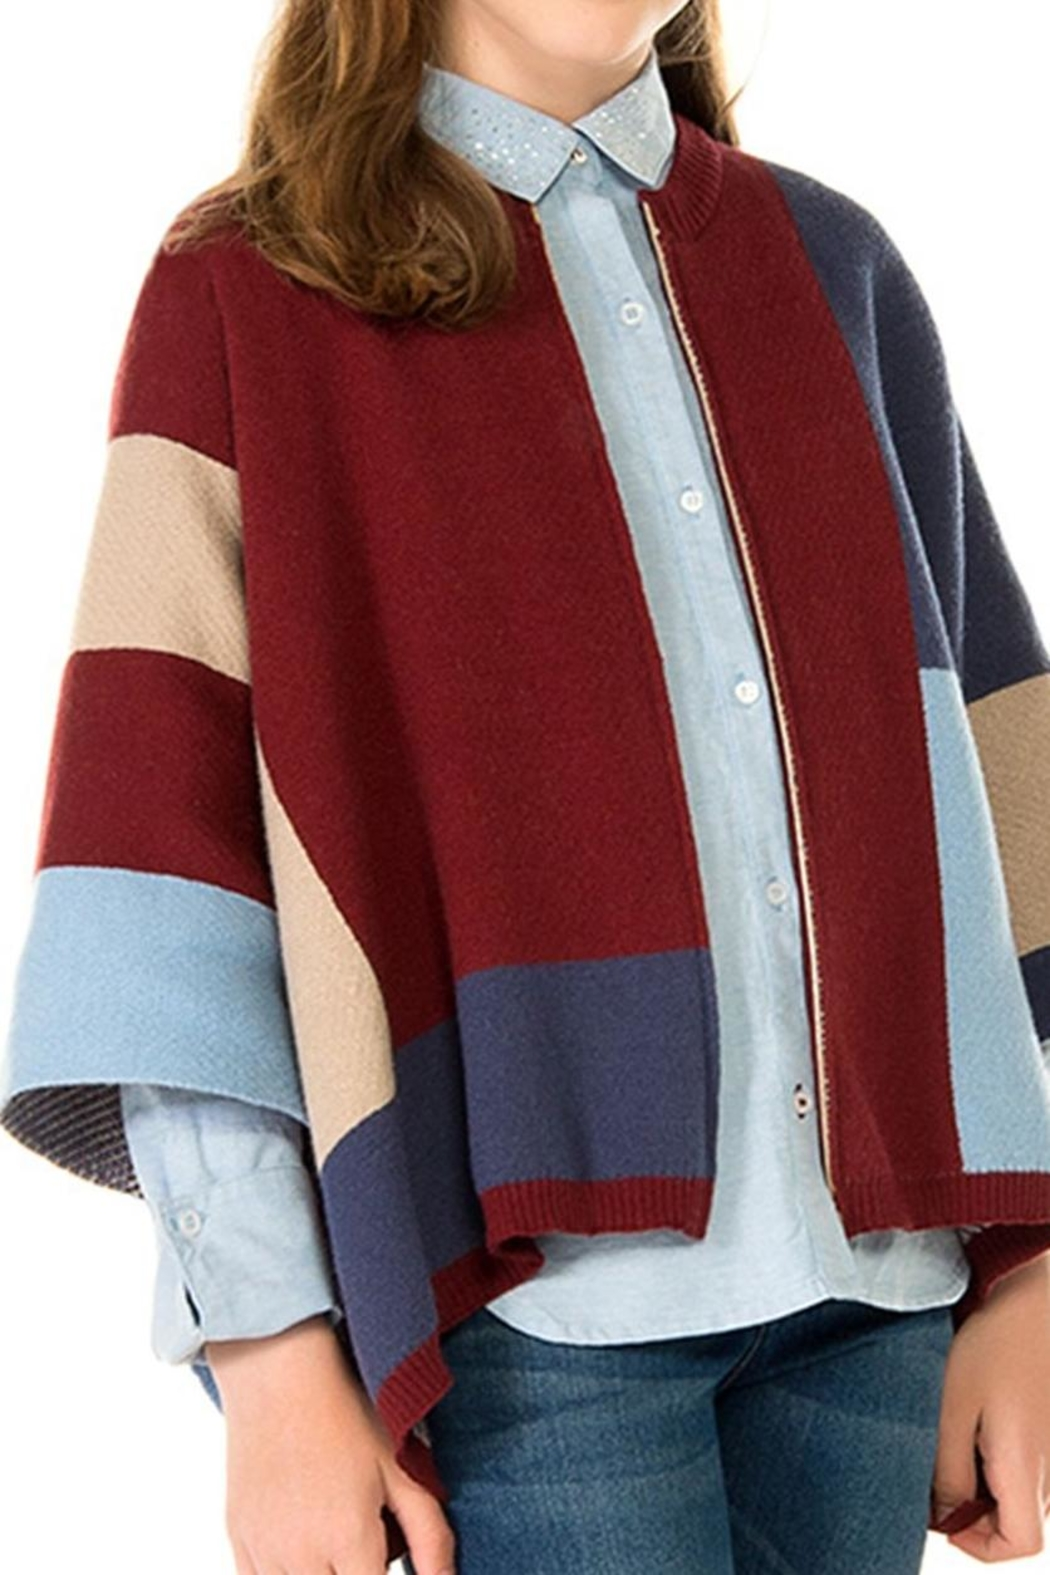 cba4329830cf4 Mayoral Knit Zip Poncho from Mississippi by Popfizz Boutique ...